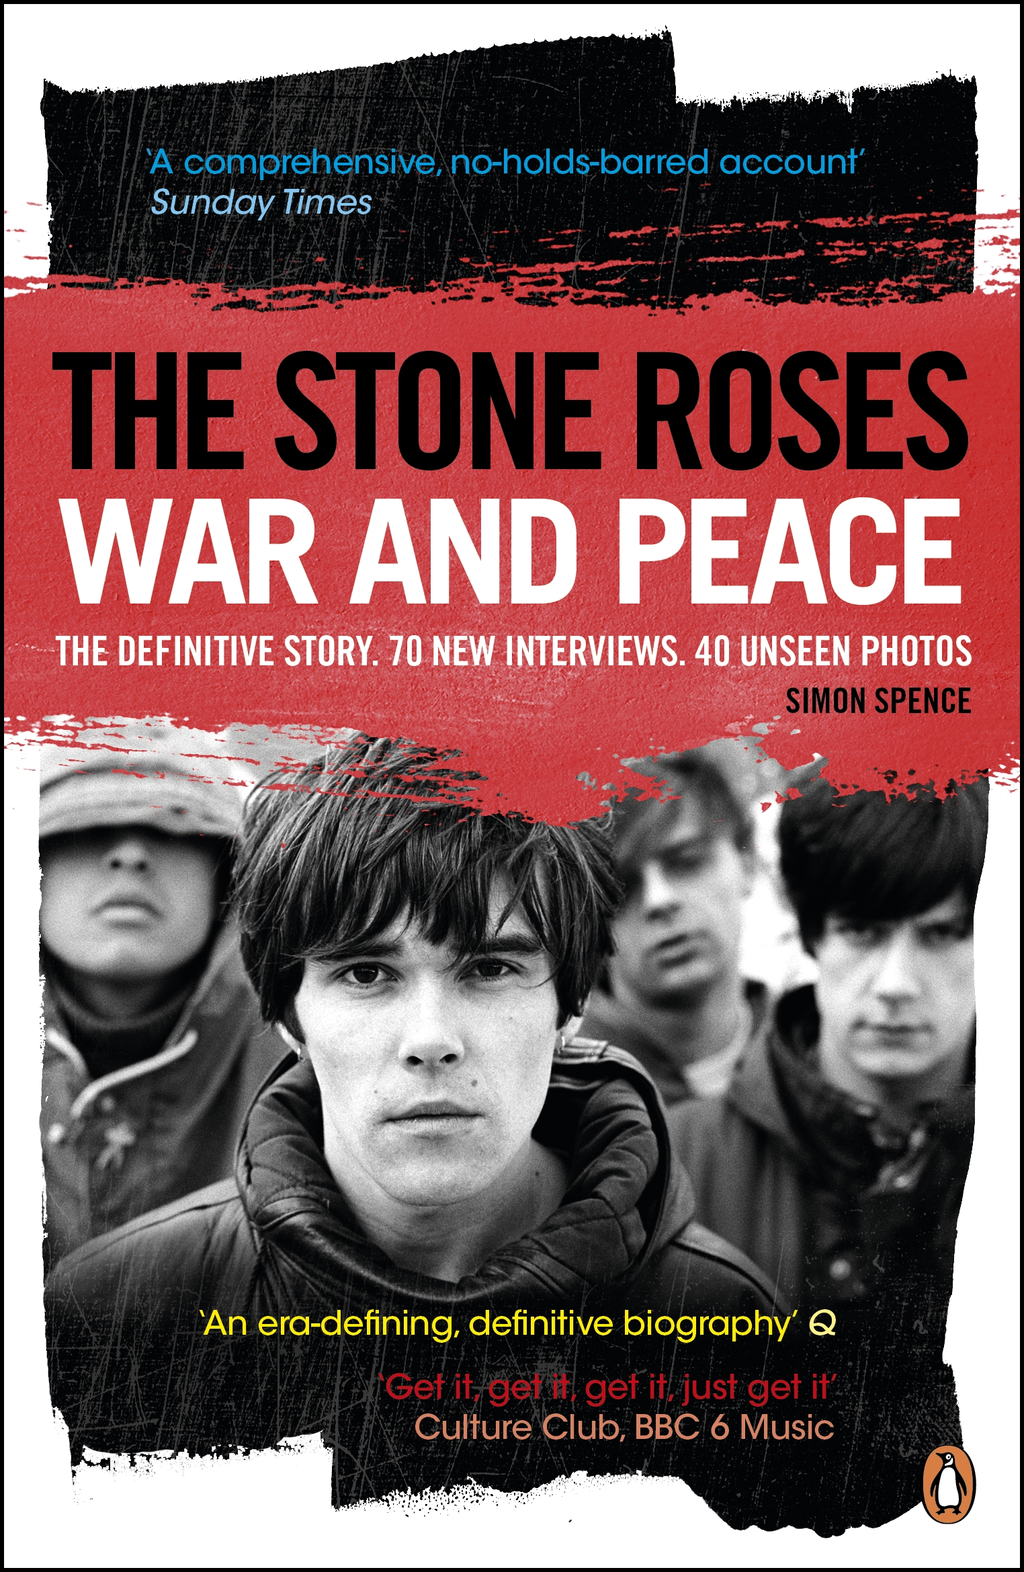 The Stone Roses War and Peace